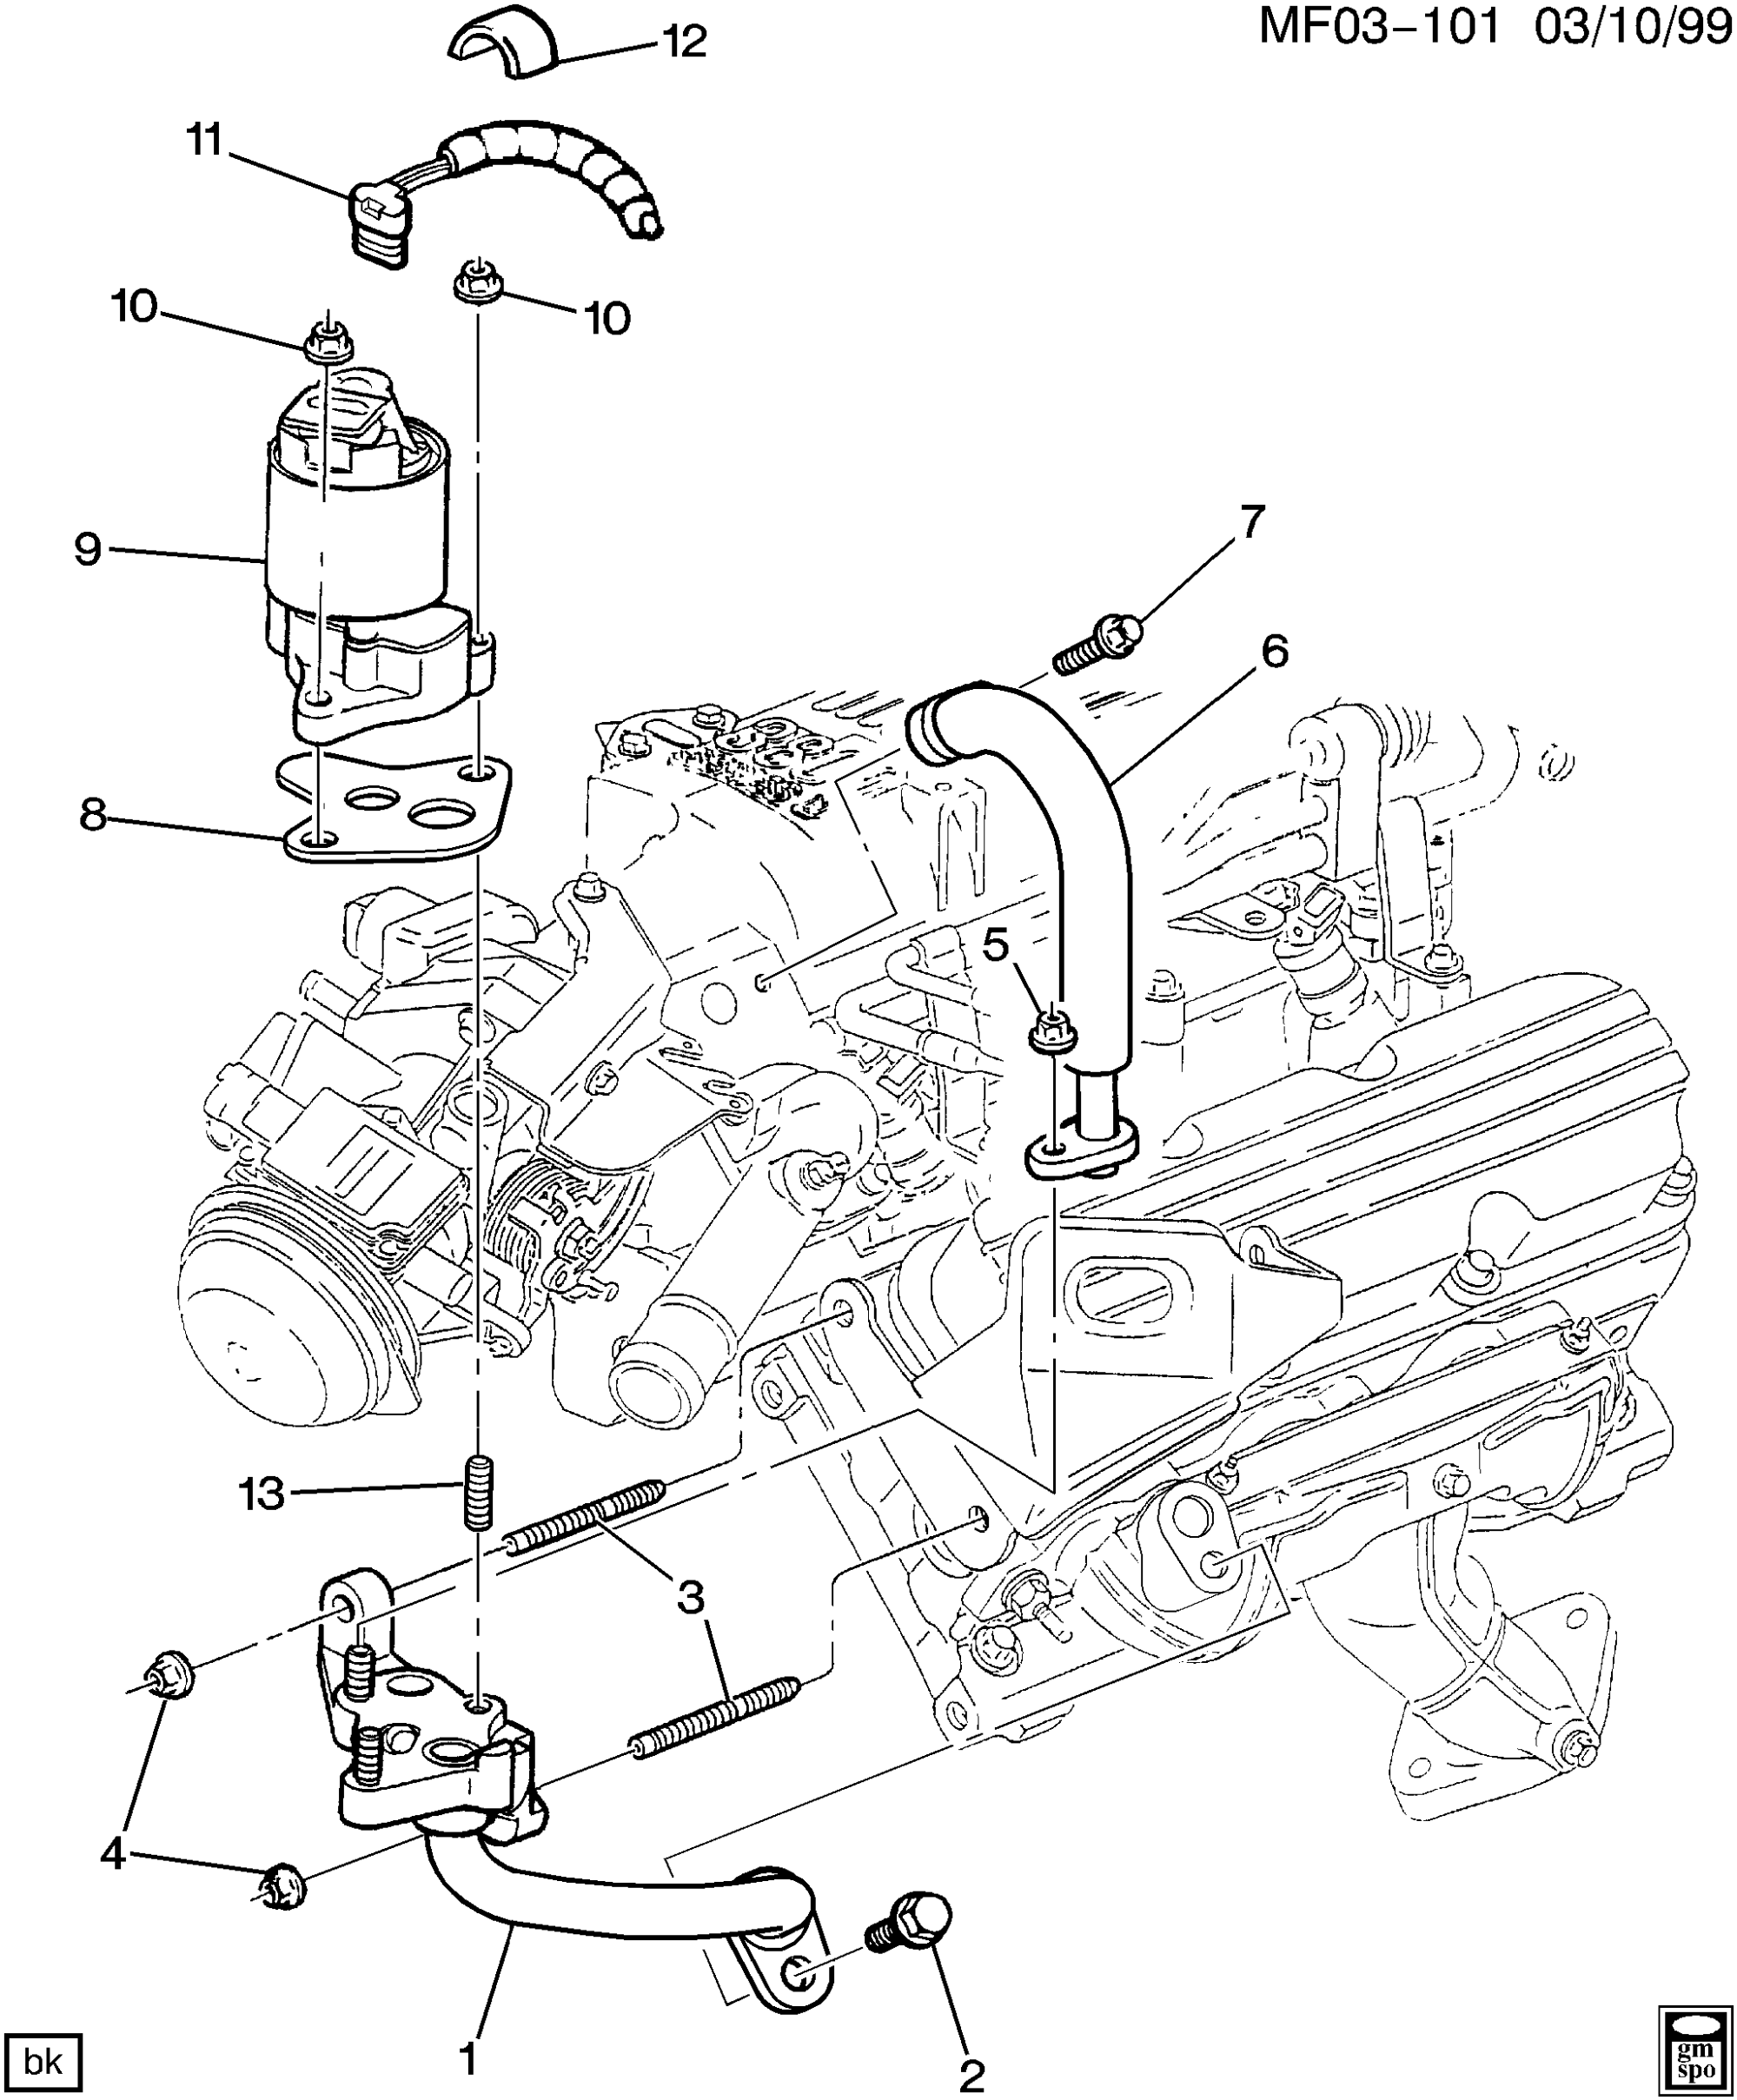 hight resolution of camaro e g r valve related parts u003e chevrolet epc online 99 camaro egr valve diagram